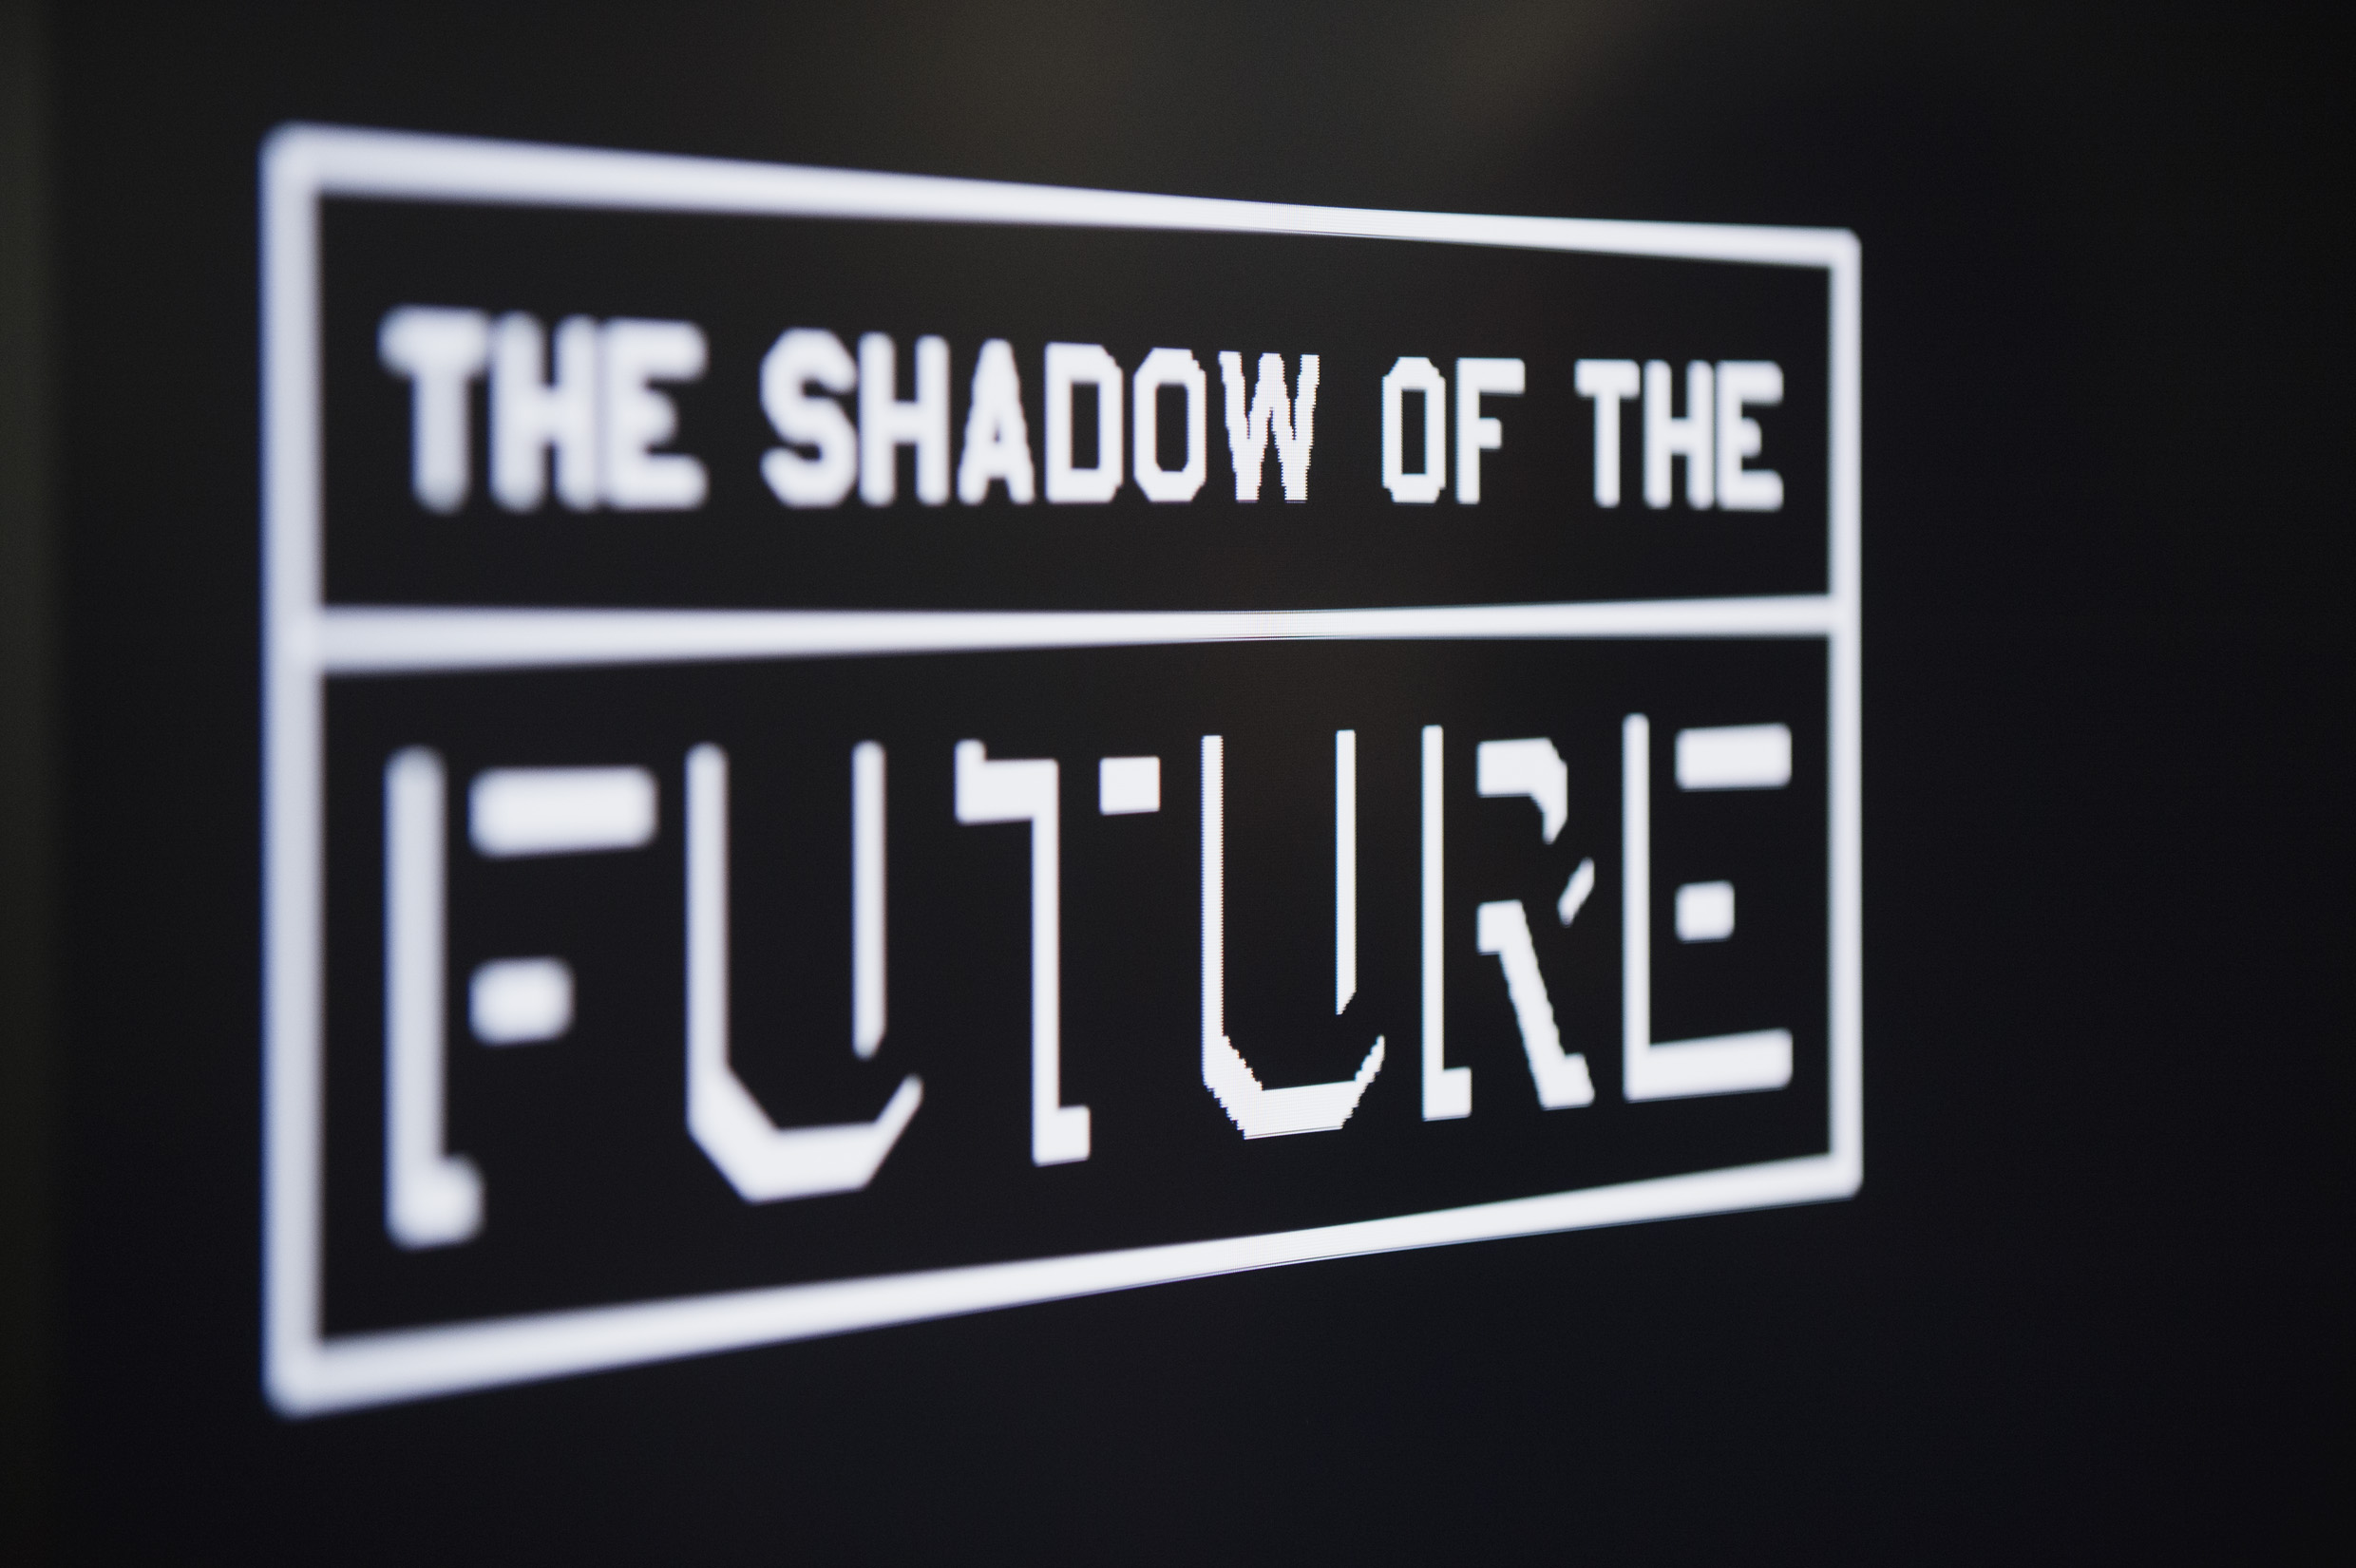 The Shadow of the Future game display screen